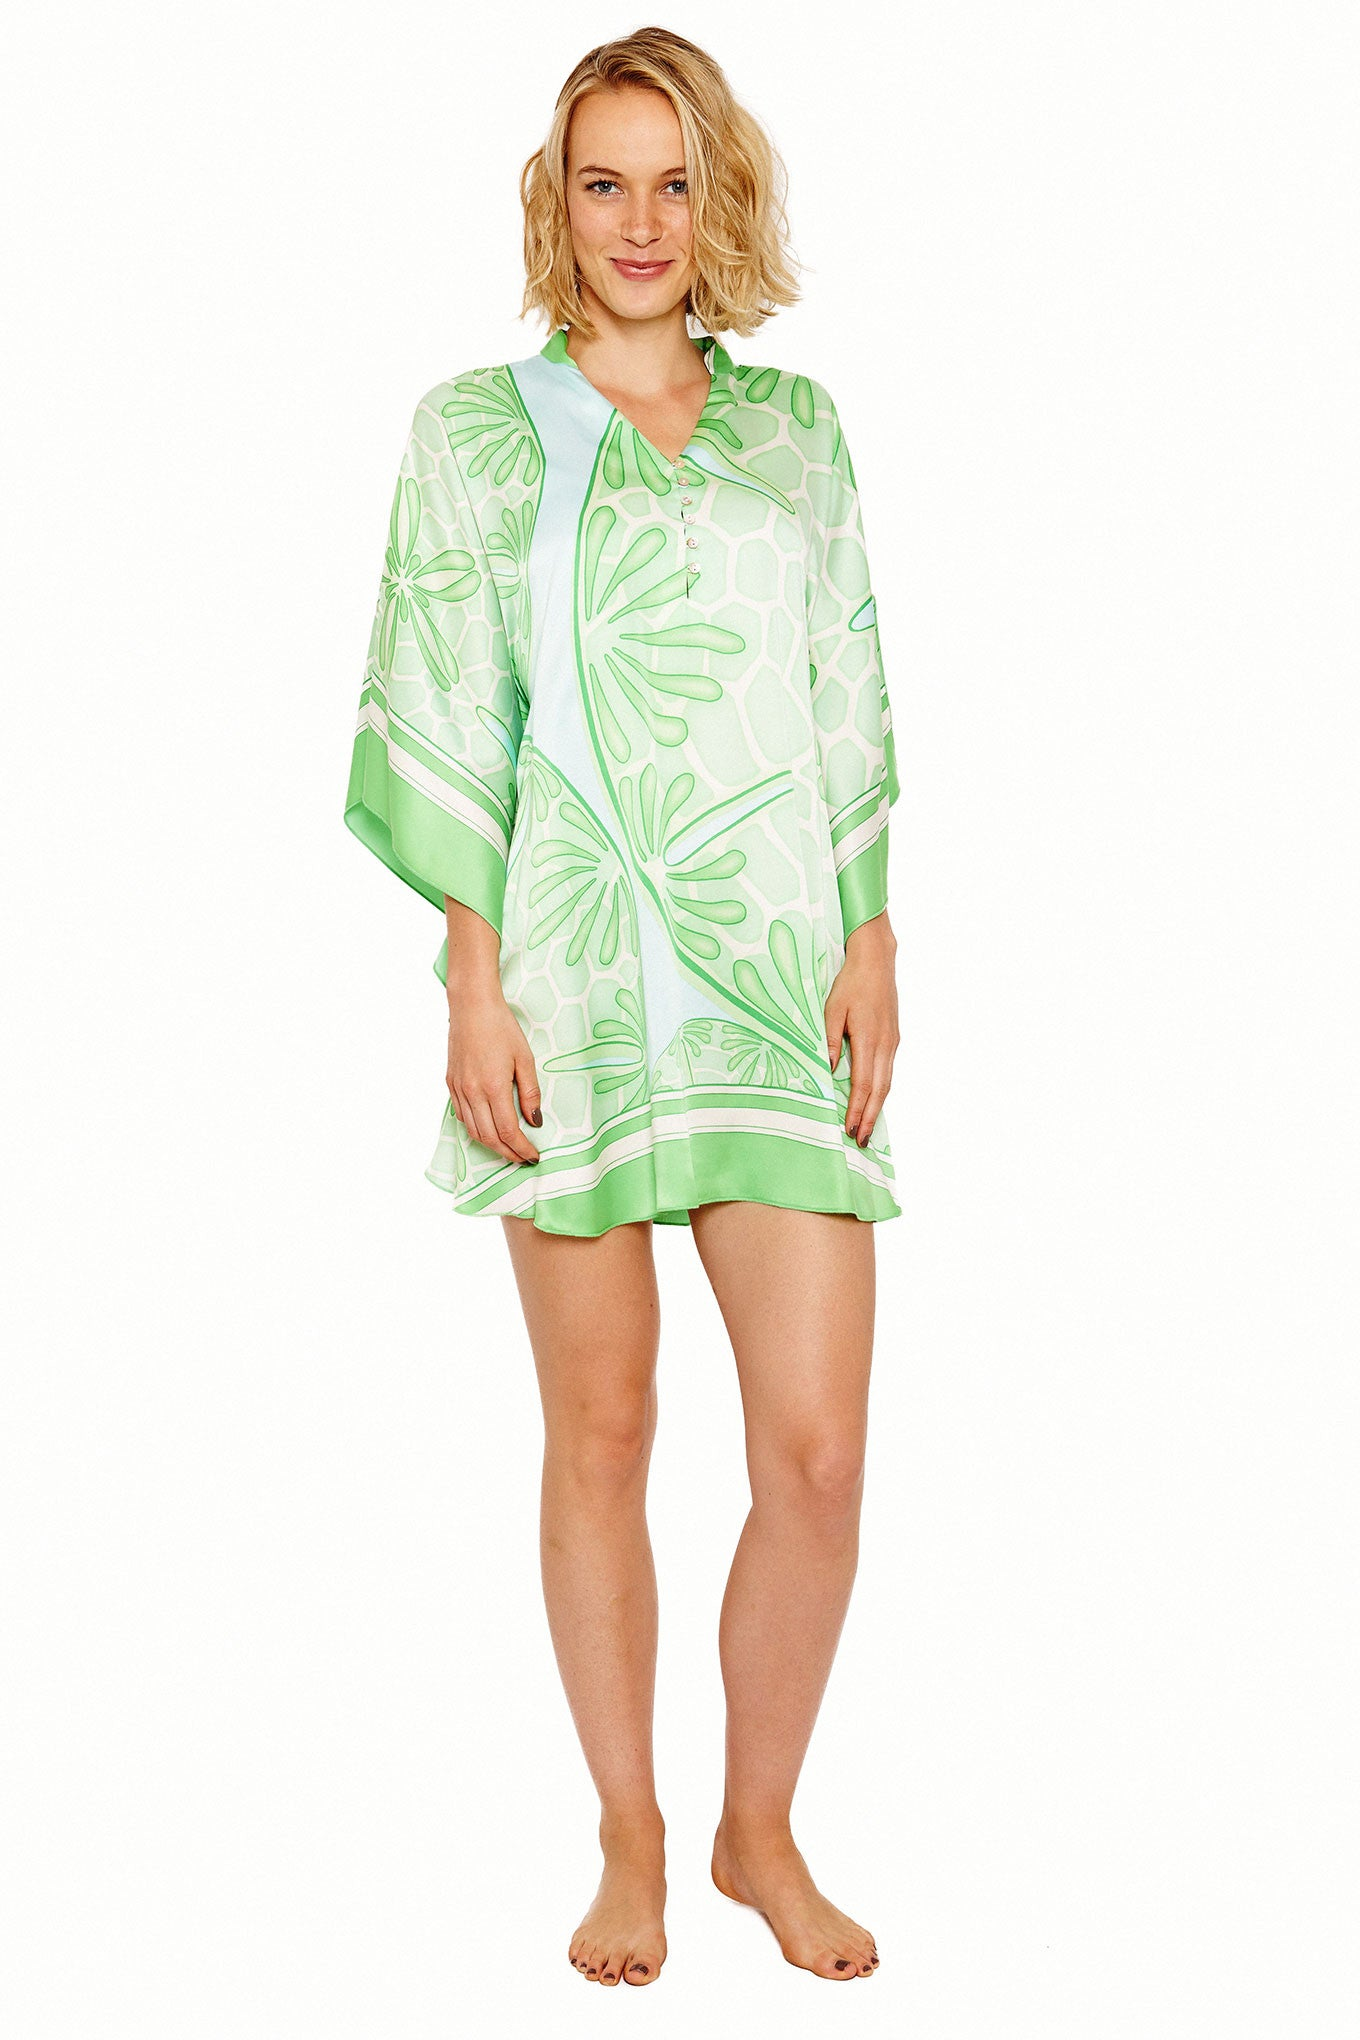 Lotty B Short Kaftan in Silk Crepe-de-Chine (Sand Dollar Green) Front